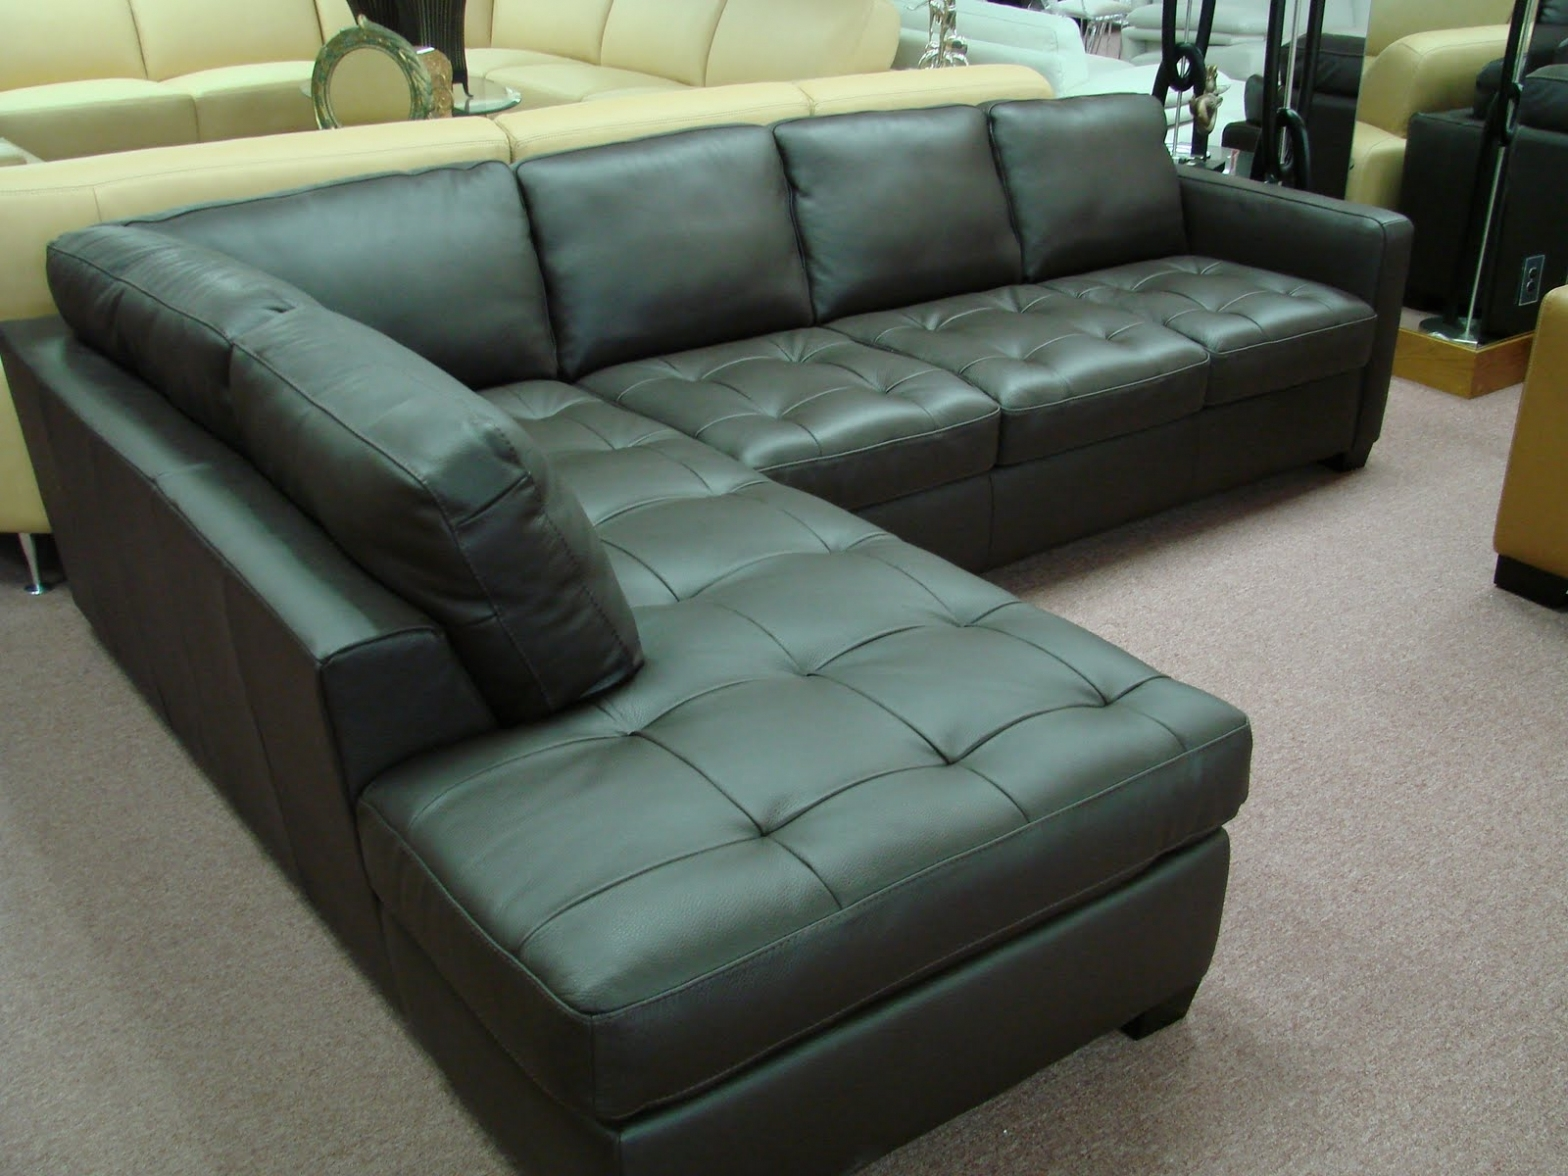 Furniture: Furniture: Havertys Leather Sectional | Havertys Sofas Throughout Sectional Sofas At Havertys (View 7 of 15)